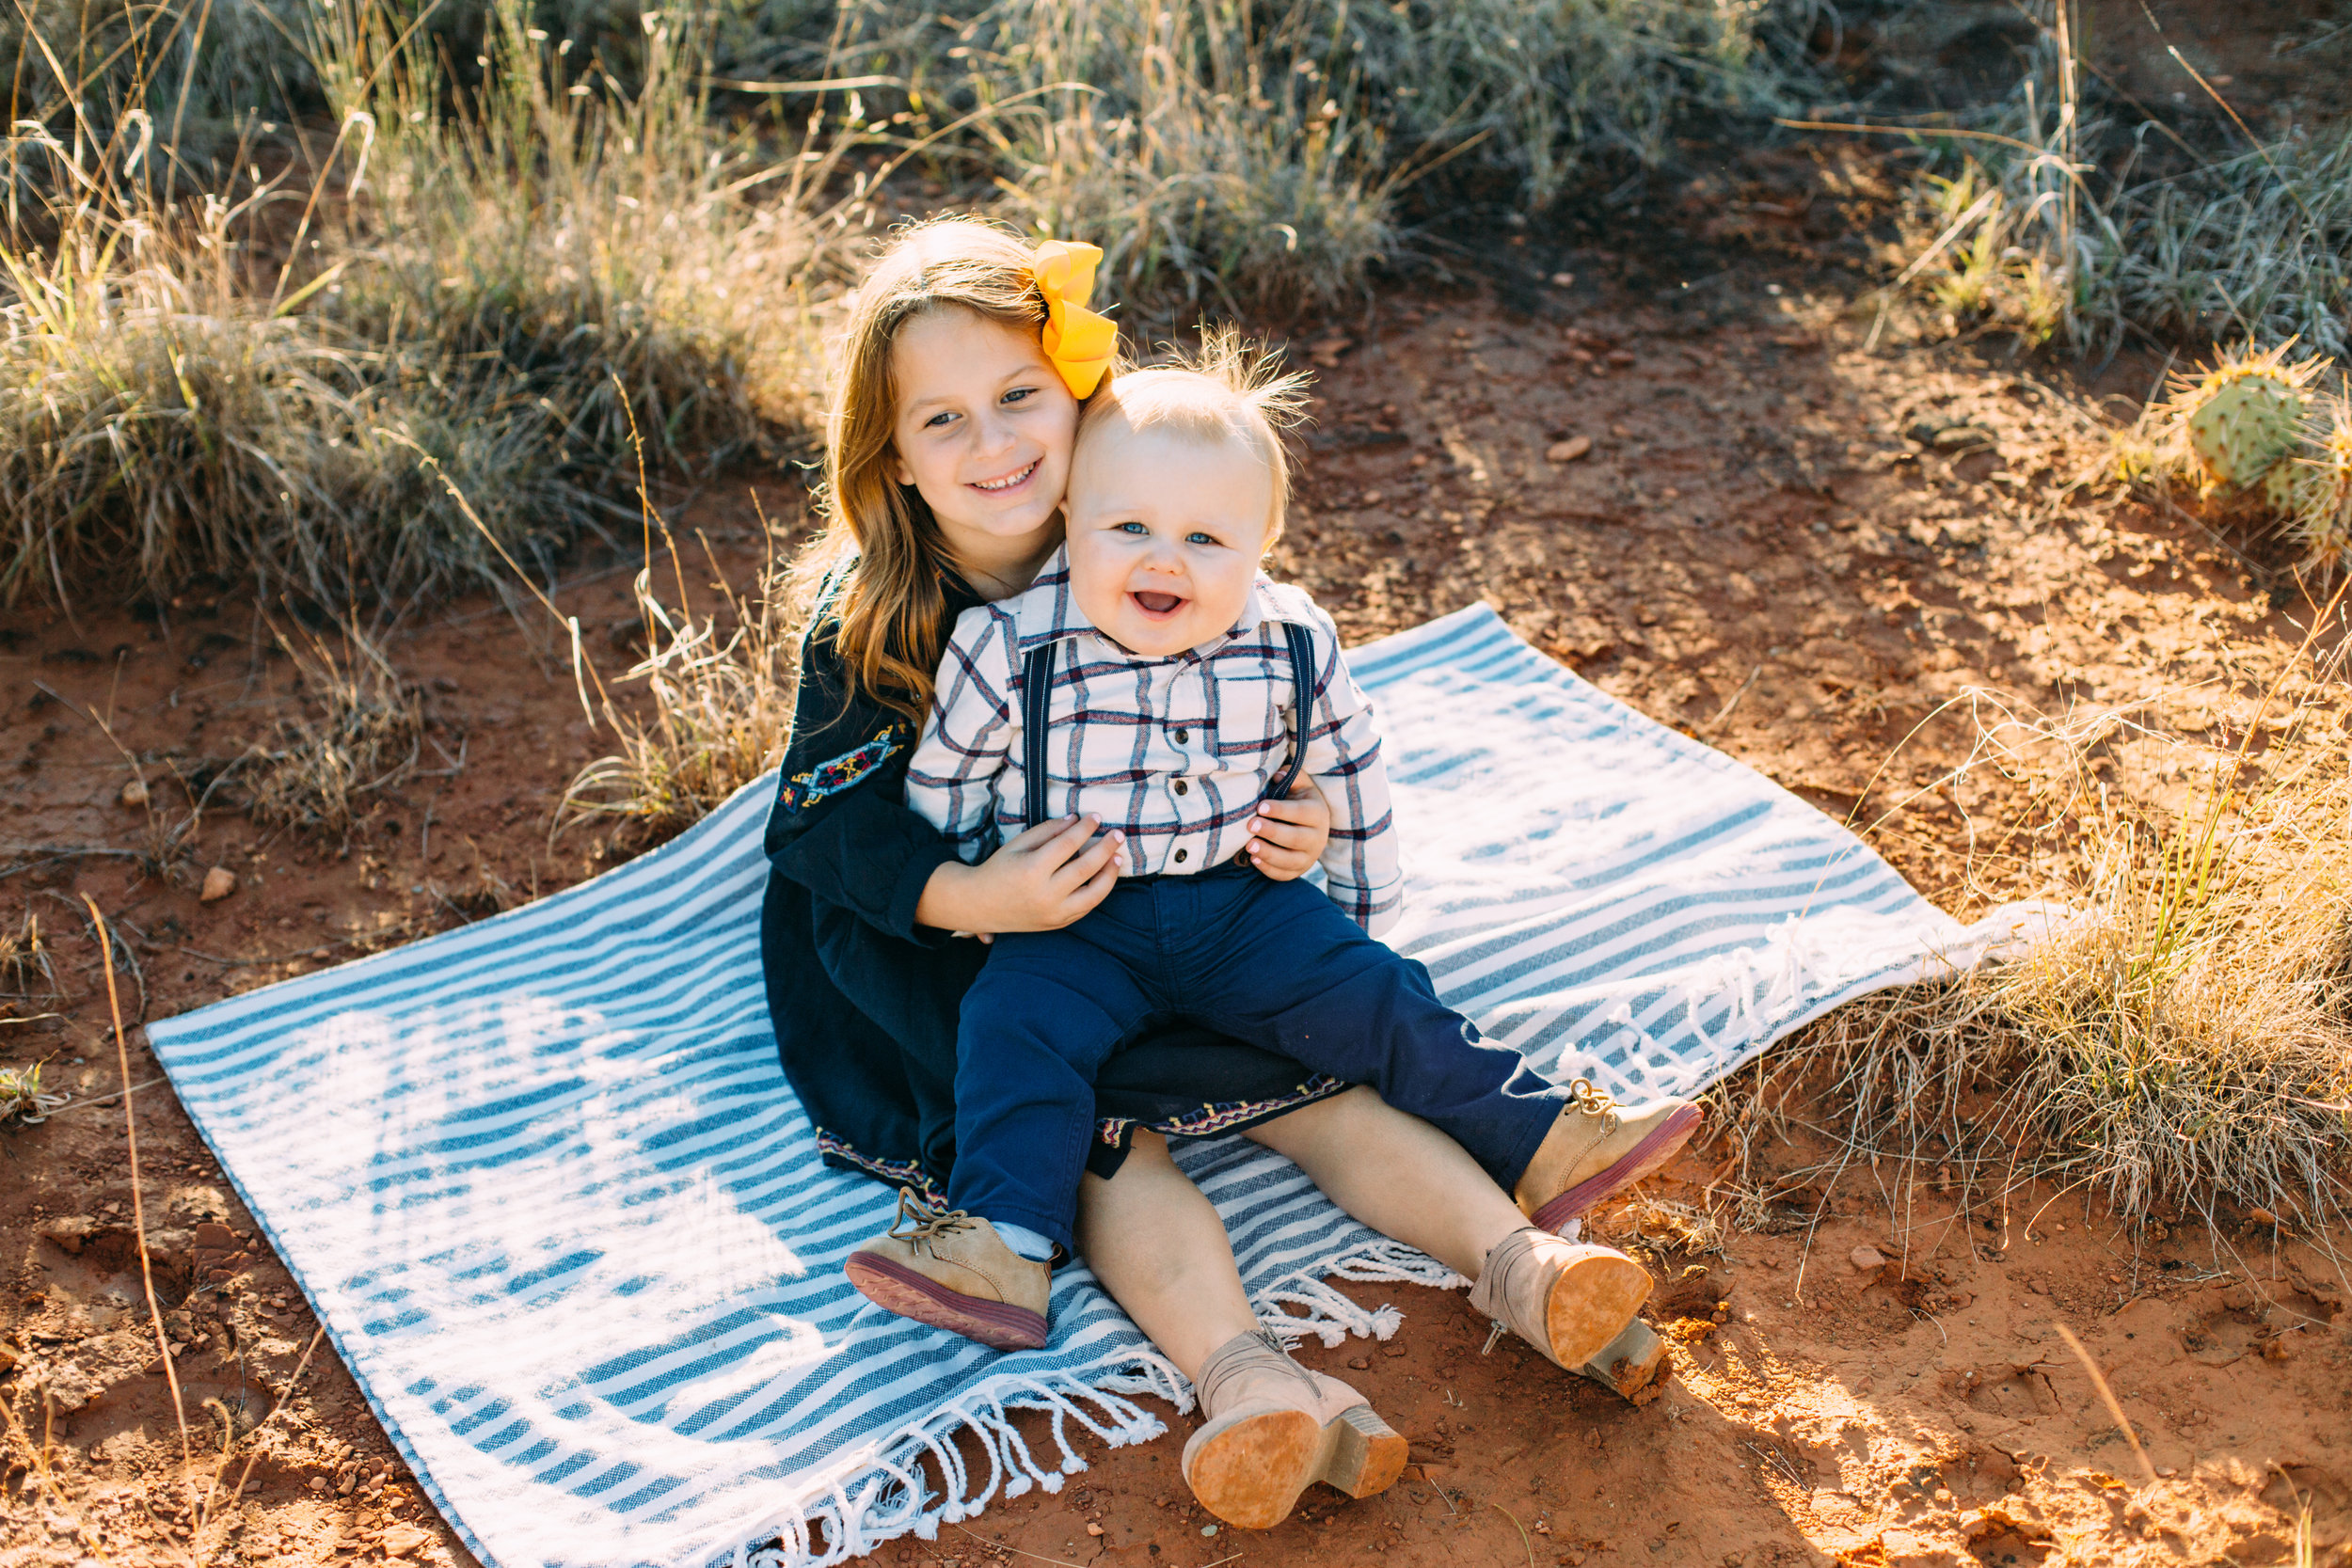 Brother and sister sit on picnic blanket while sister holds brother #tealawardphotography #texasfamilyphotographer #amarillophotographer #amarillofamilyphotographer #lifestylephotography #emotionalphotography #familyphotosoot #family #lovingsiblings #purejoy #familyphotos #familyphotographer #greatoutdoors